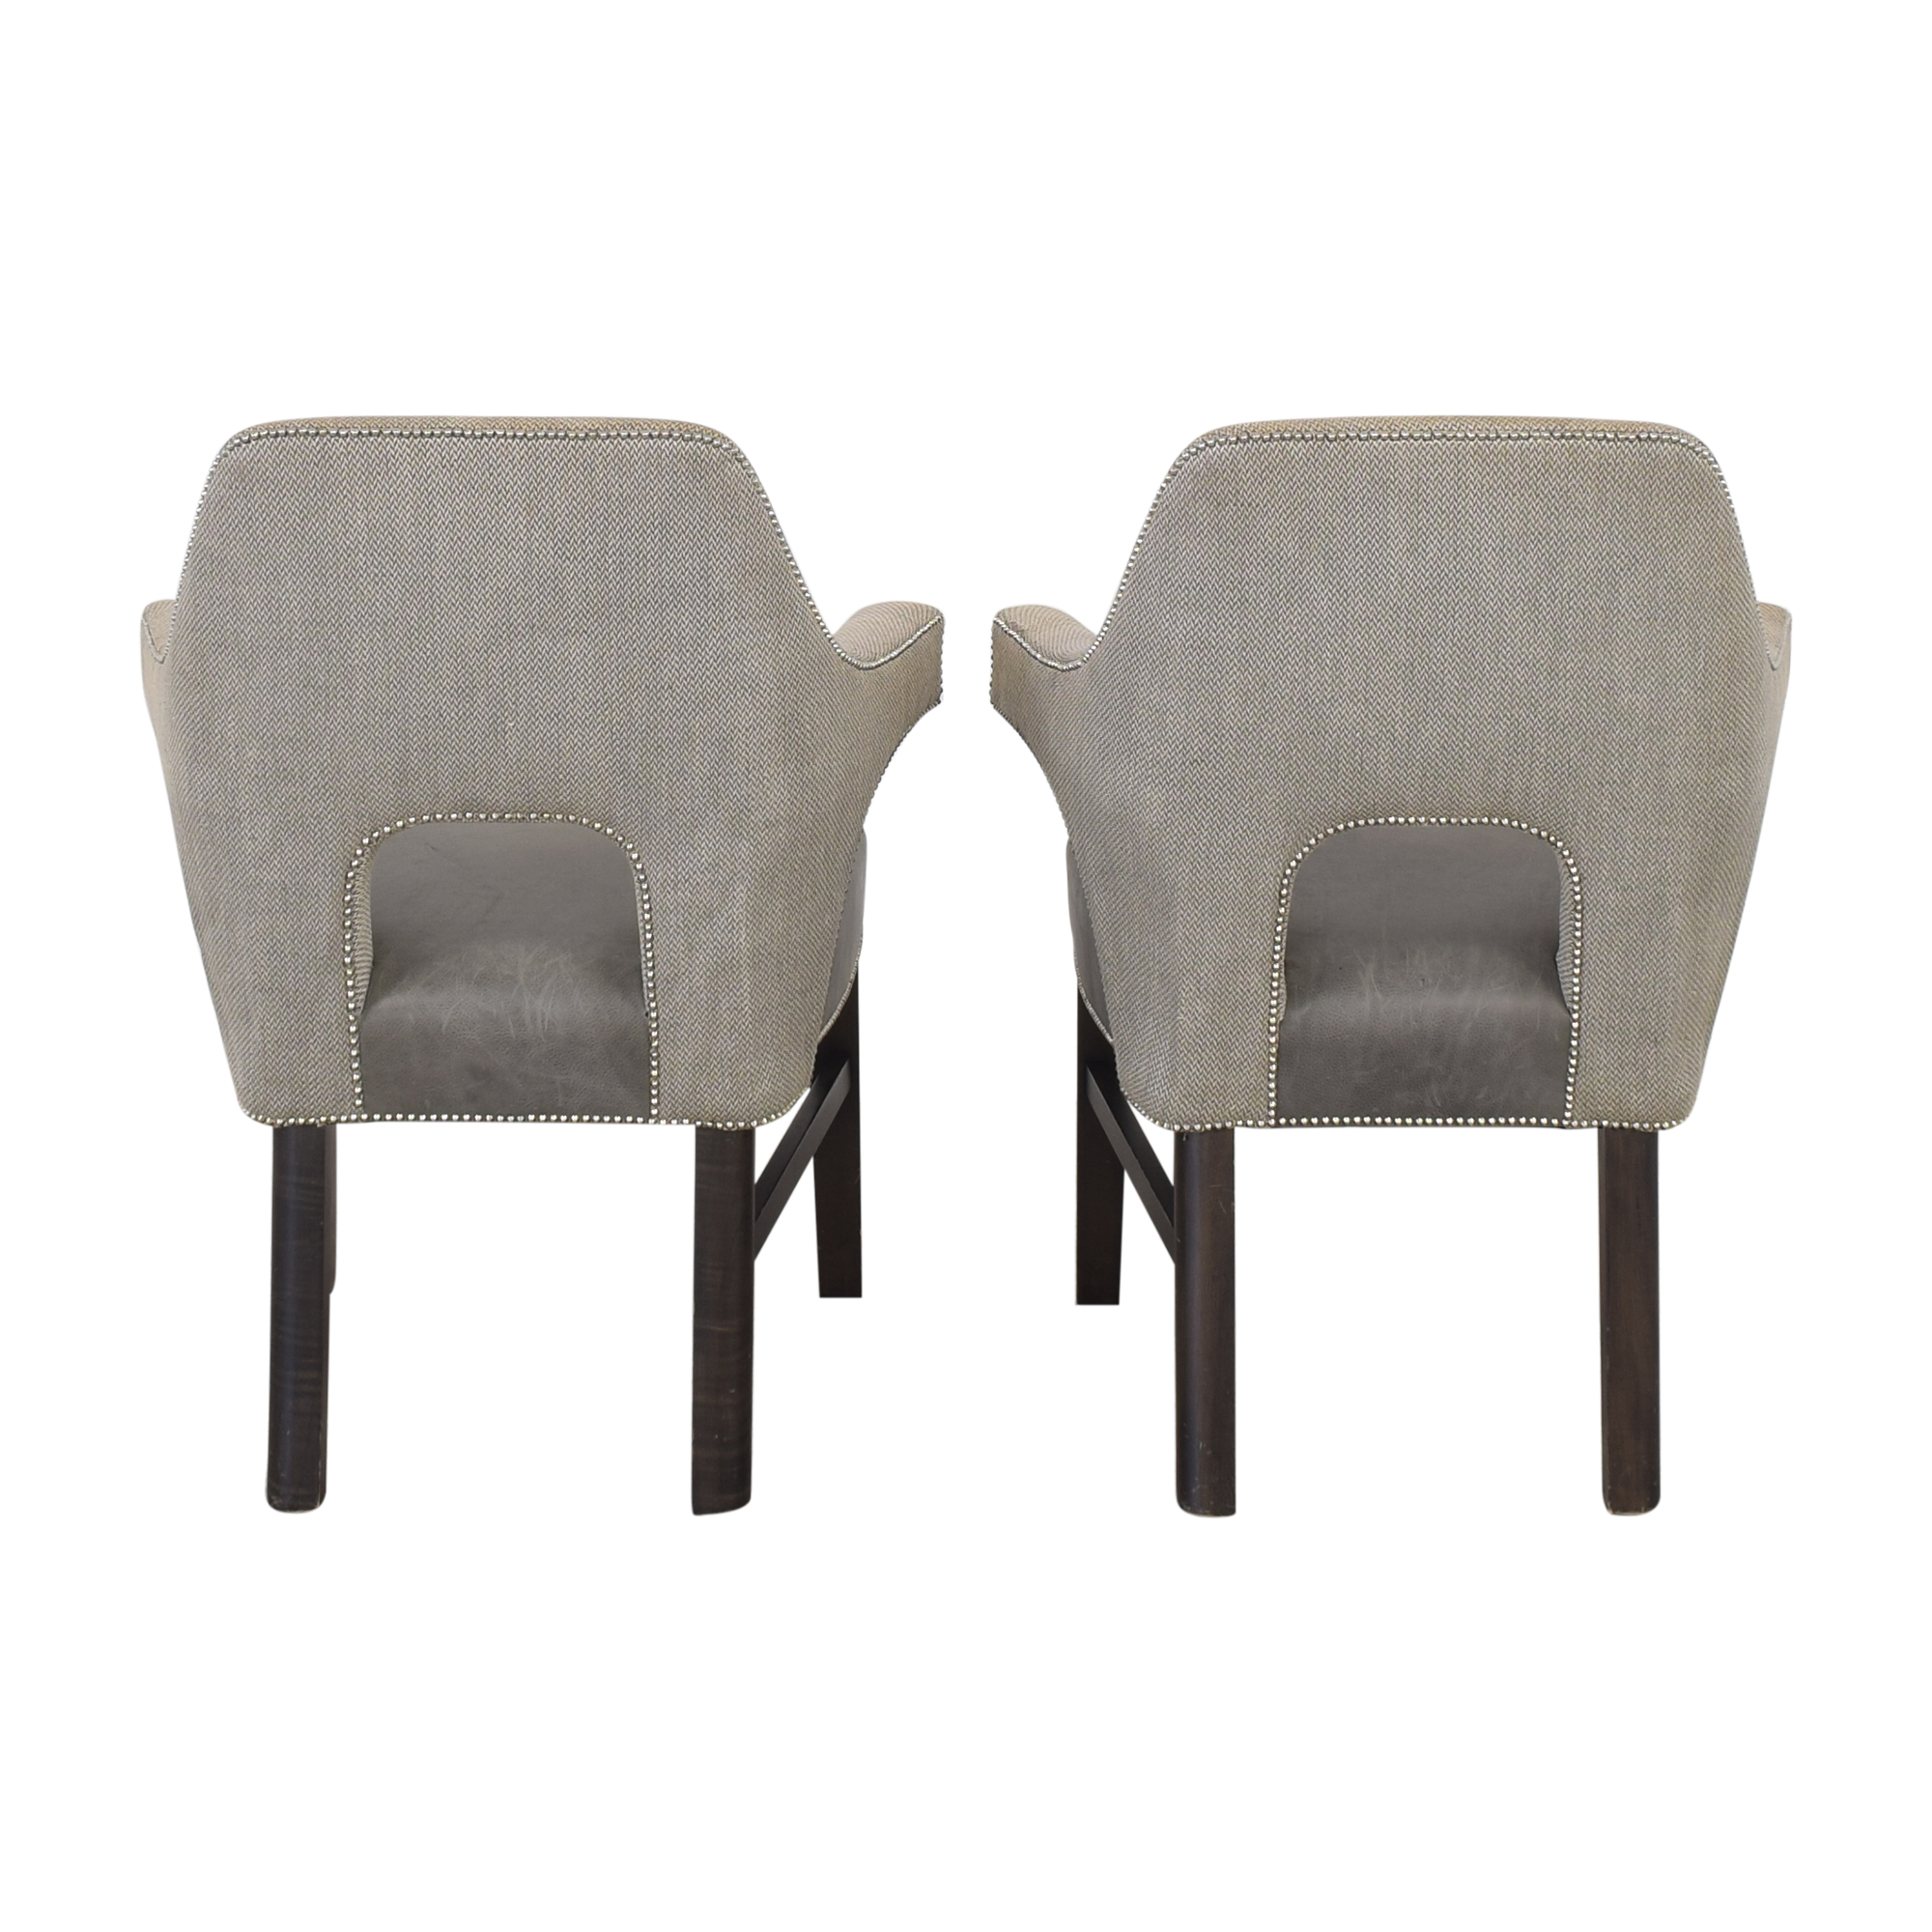 Thom Filicia Thom Filicia Modern Dining Chairs used